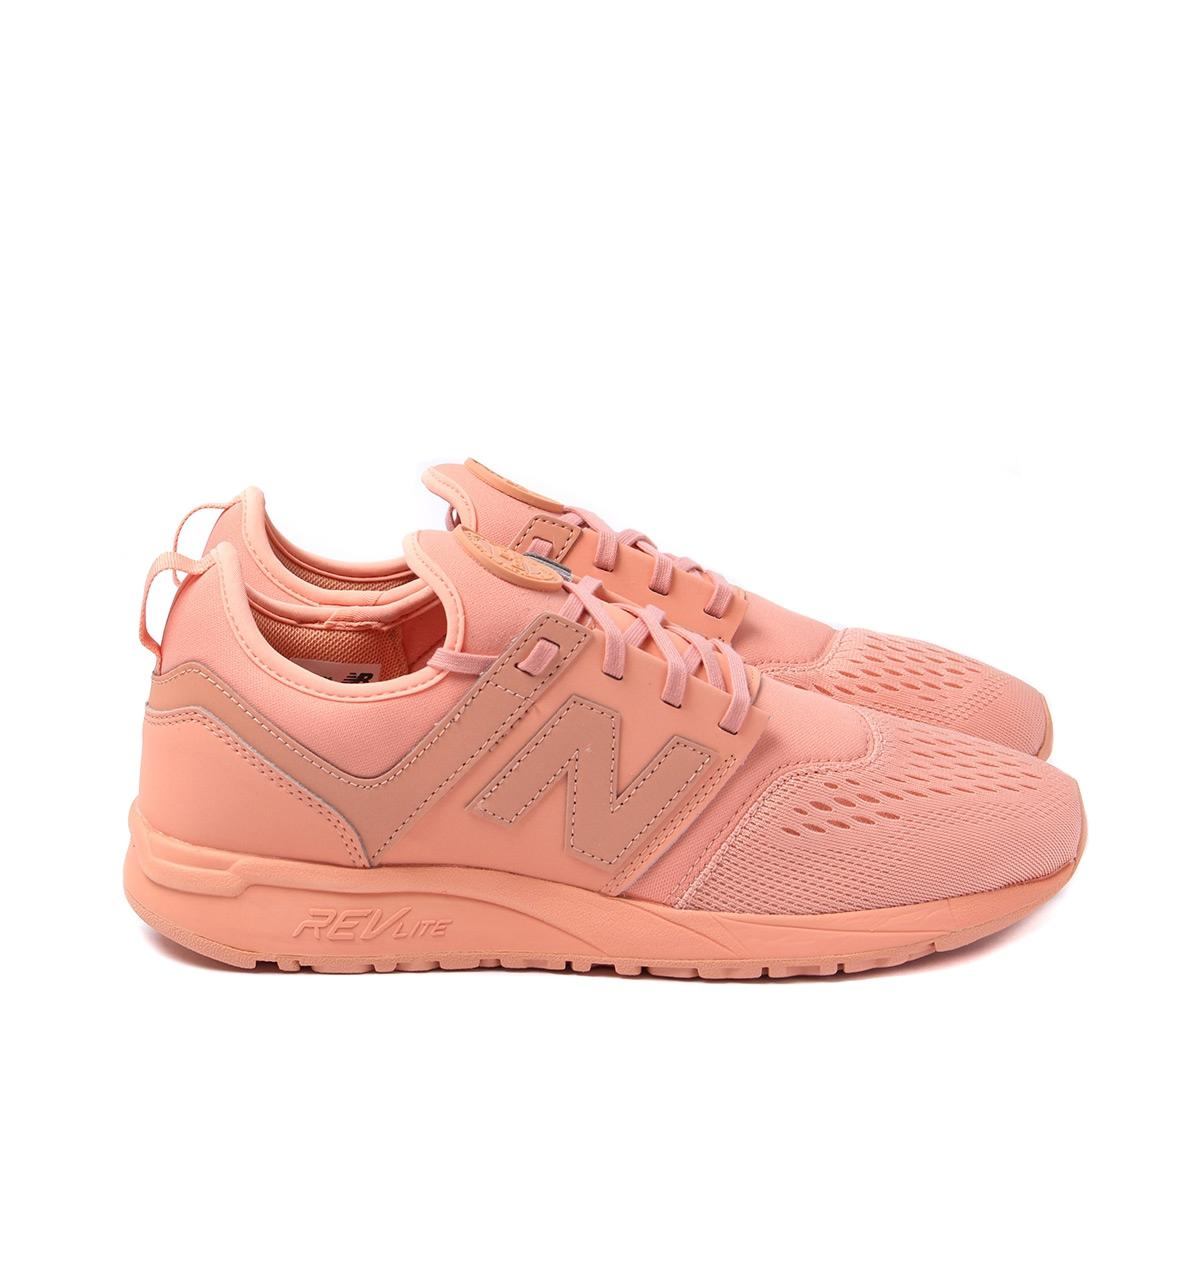 brand new b7df7 c0693 New Balance 247 Salmon Trainers in Pink for Men - Lyst